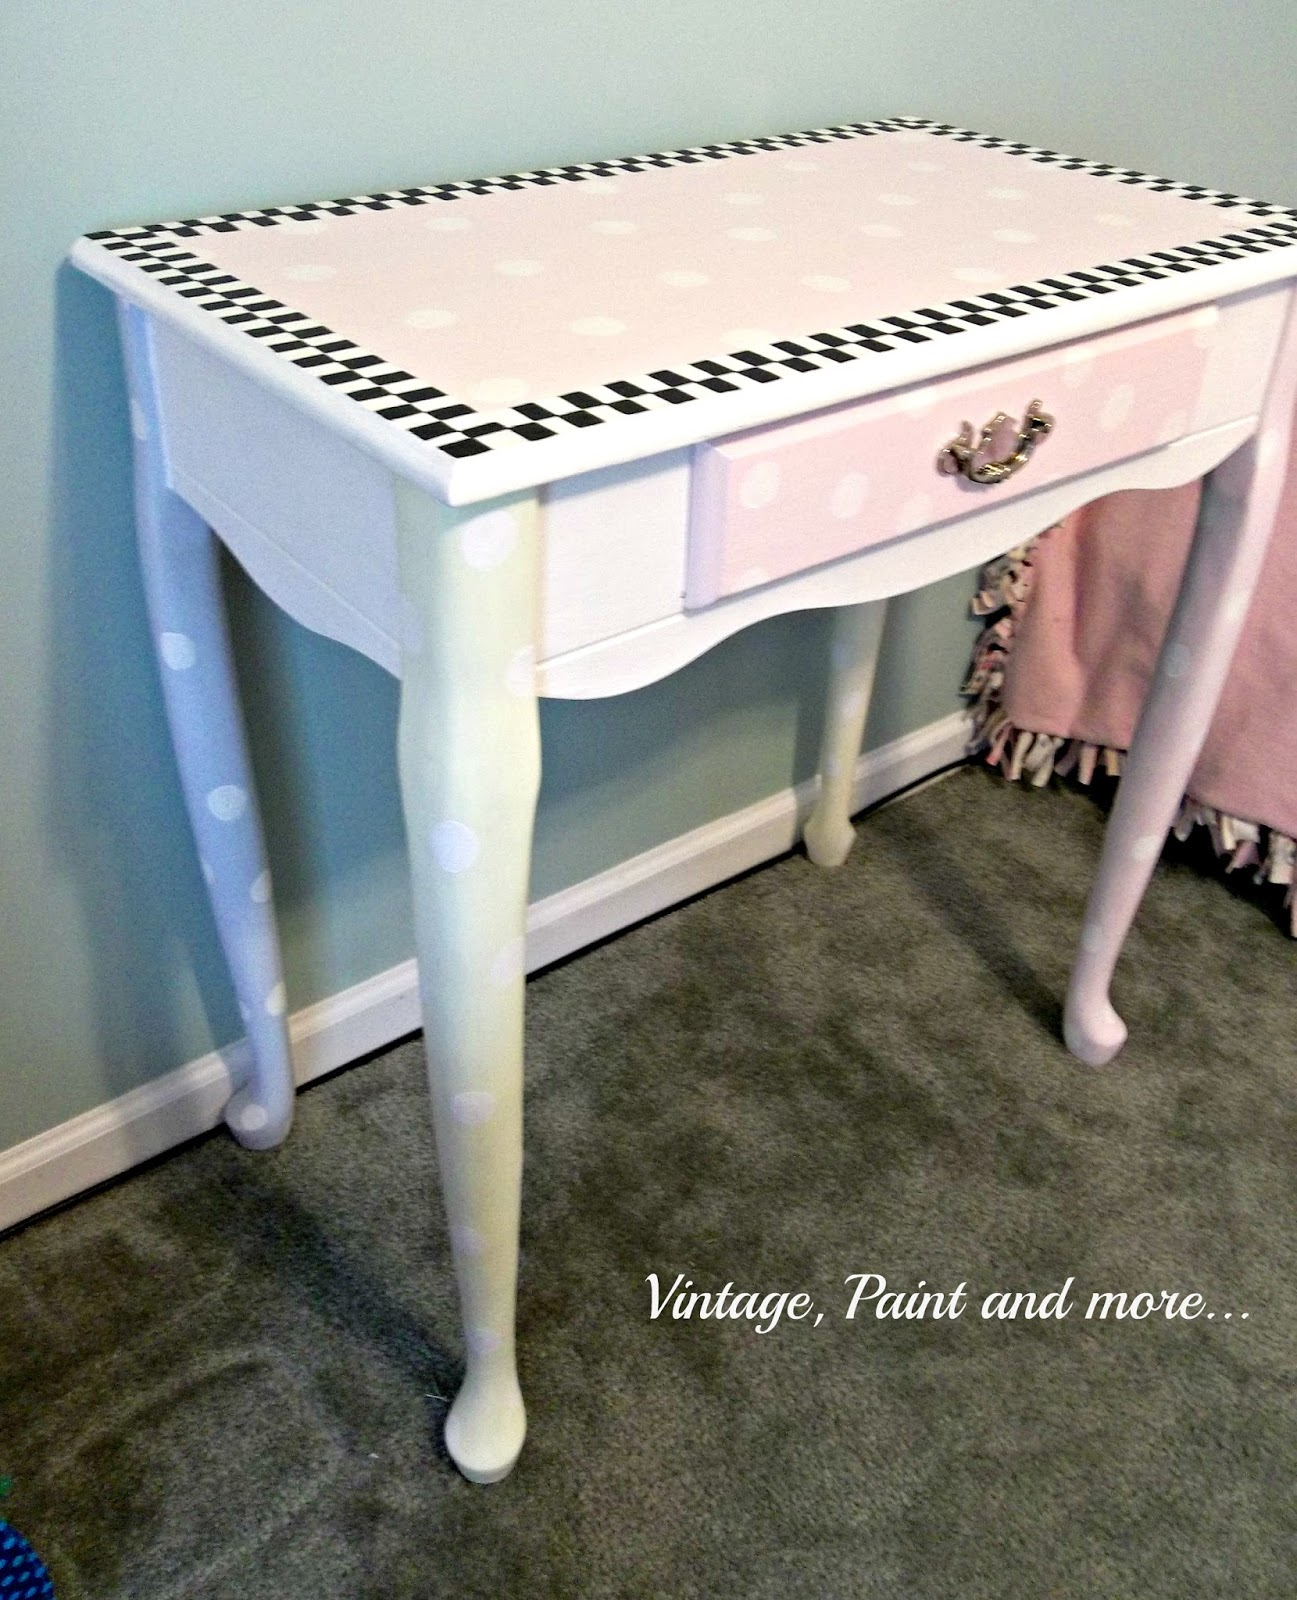 Vintage, Paint and more... thrifted desk made into fun whimsical piece for little girls room using paint